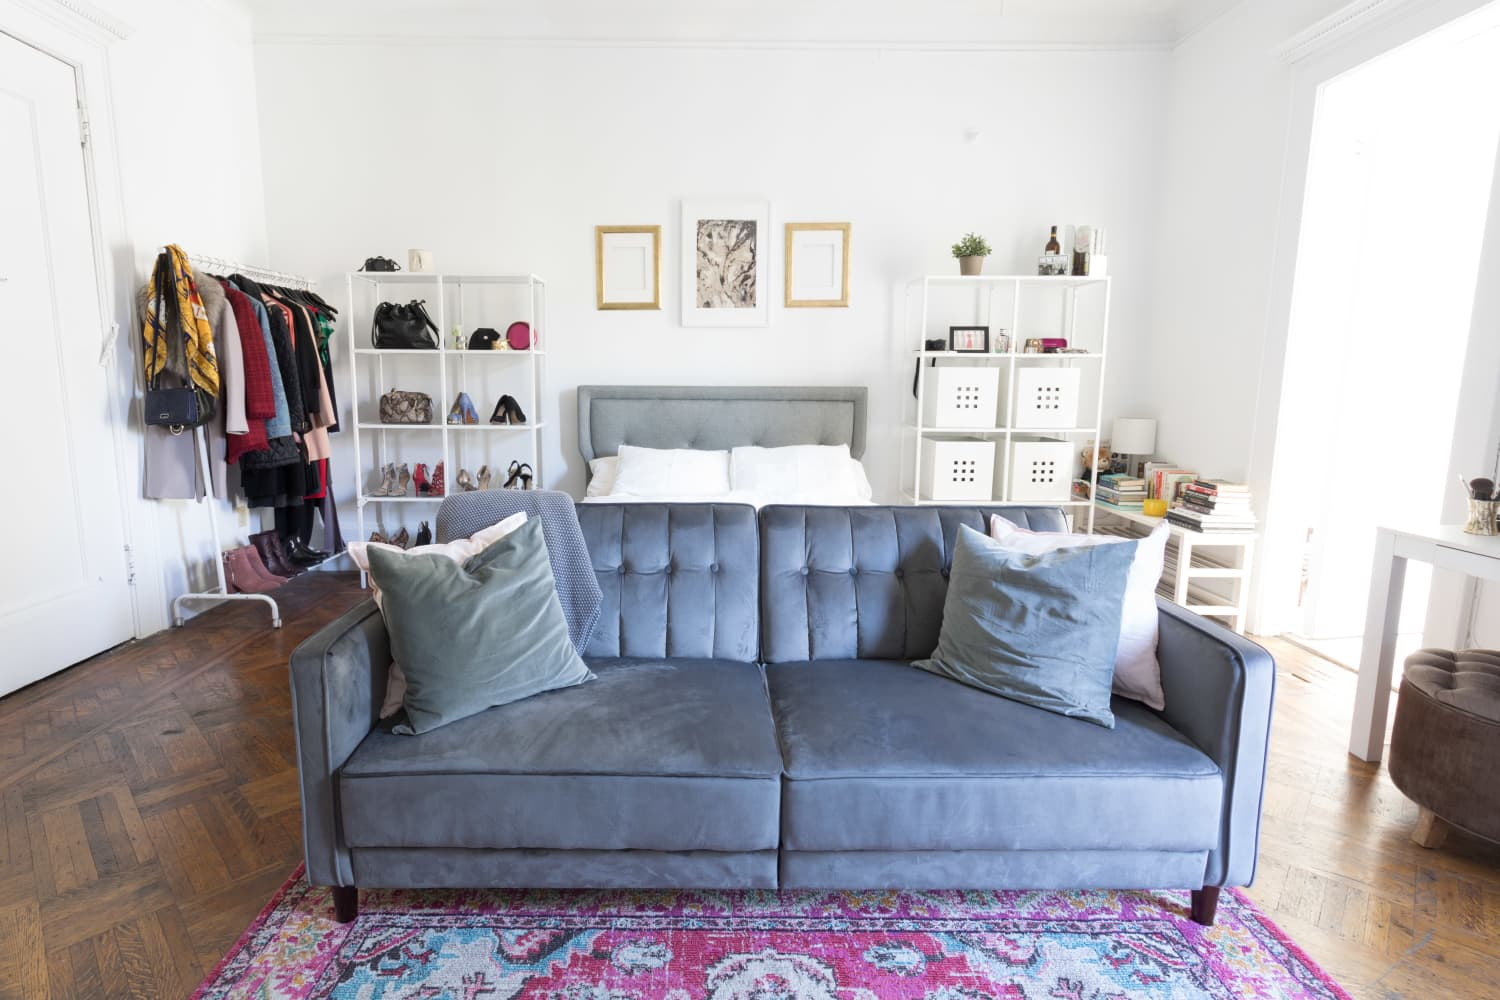 Studio Apartment Layouts That Just Always Work